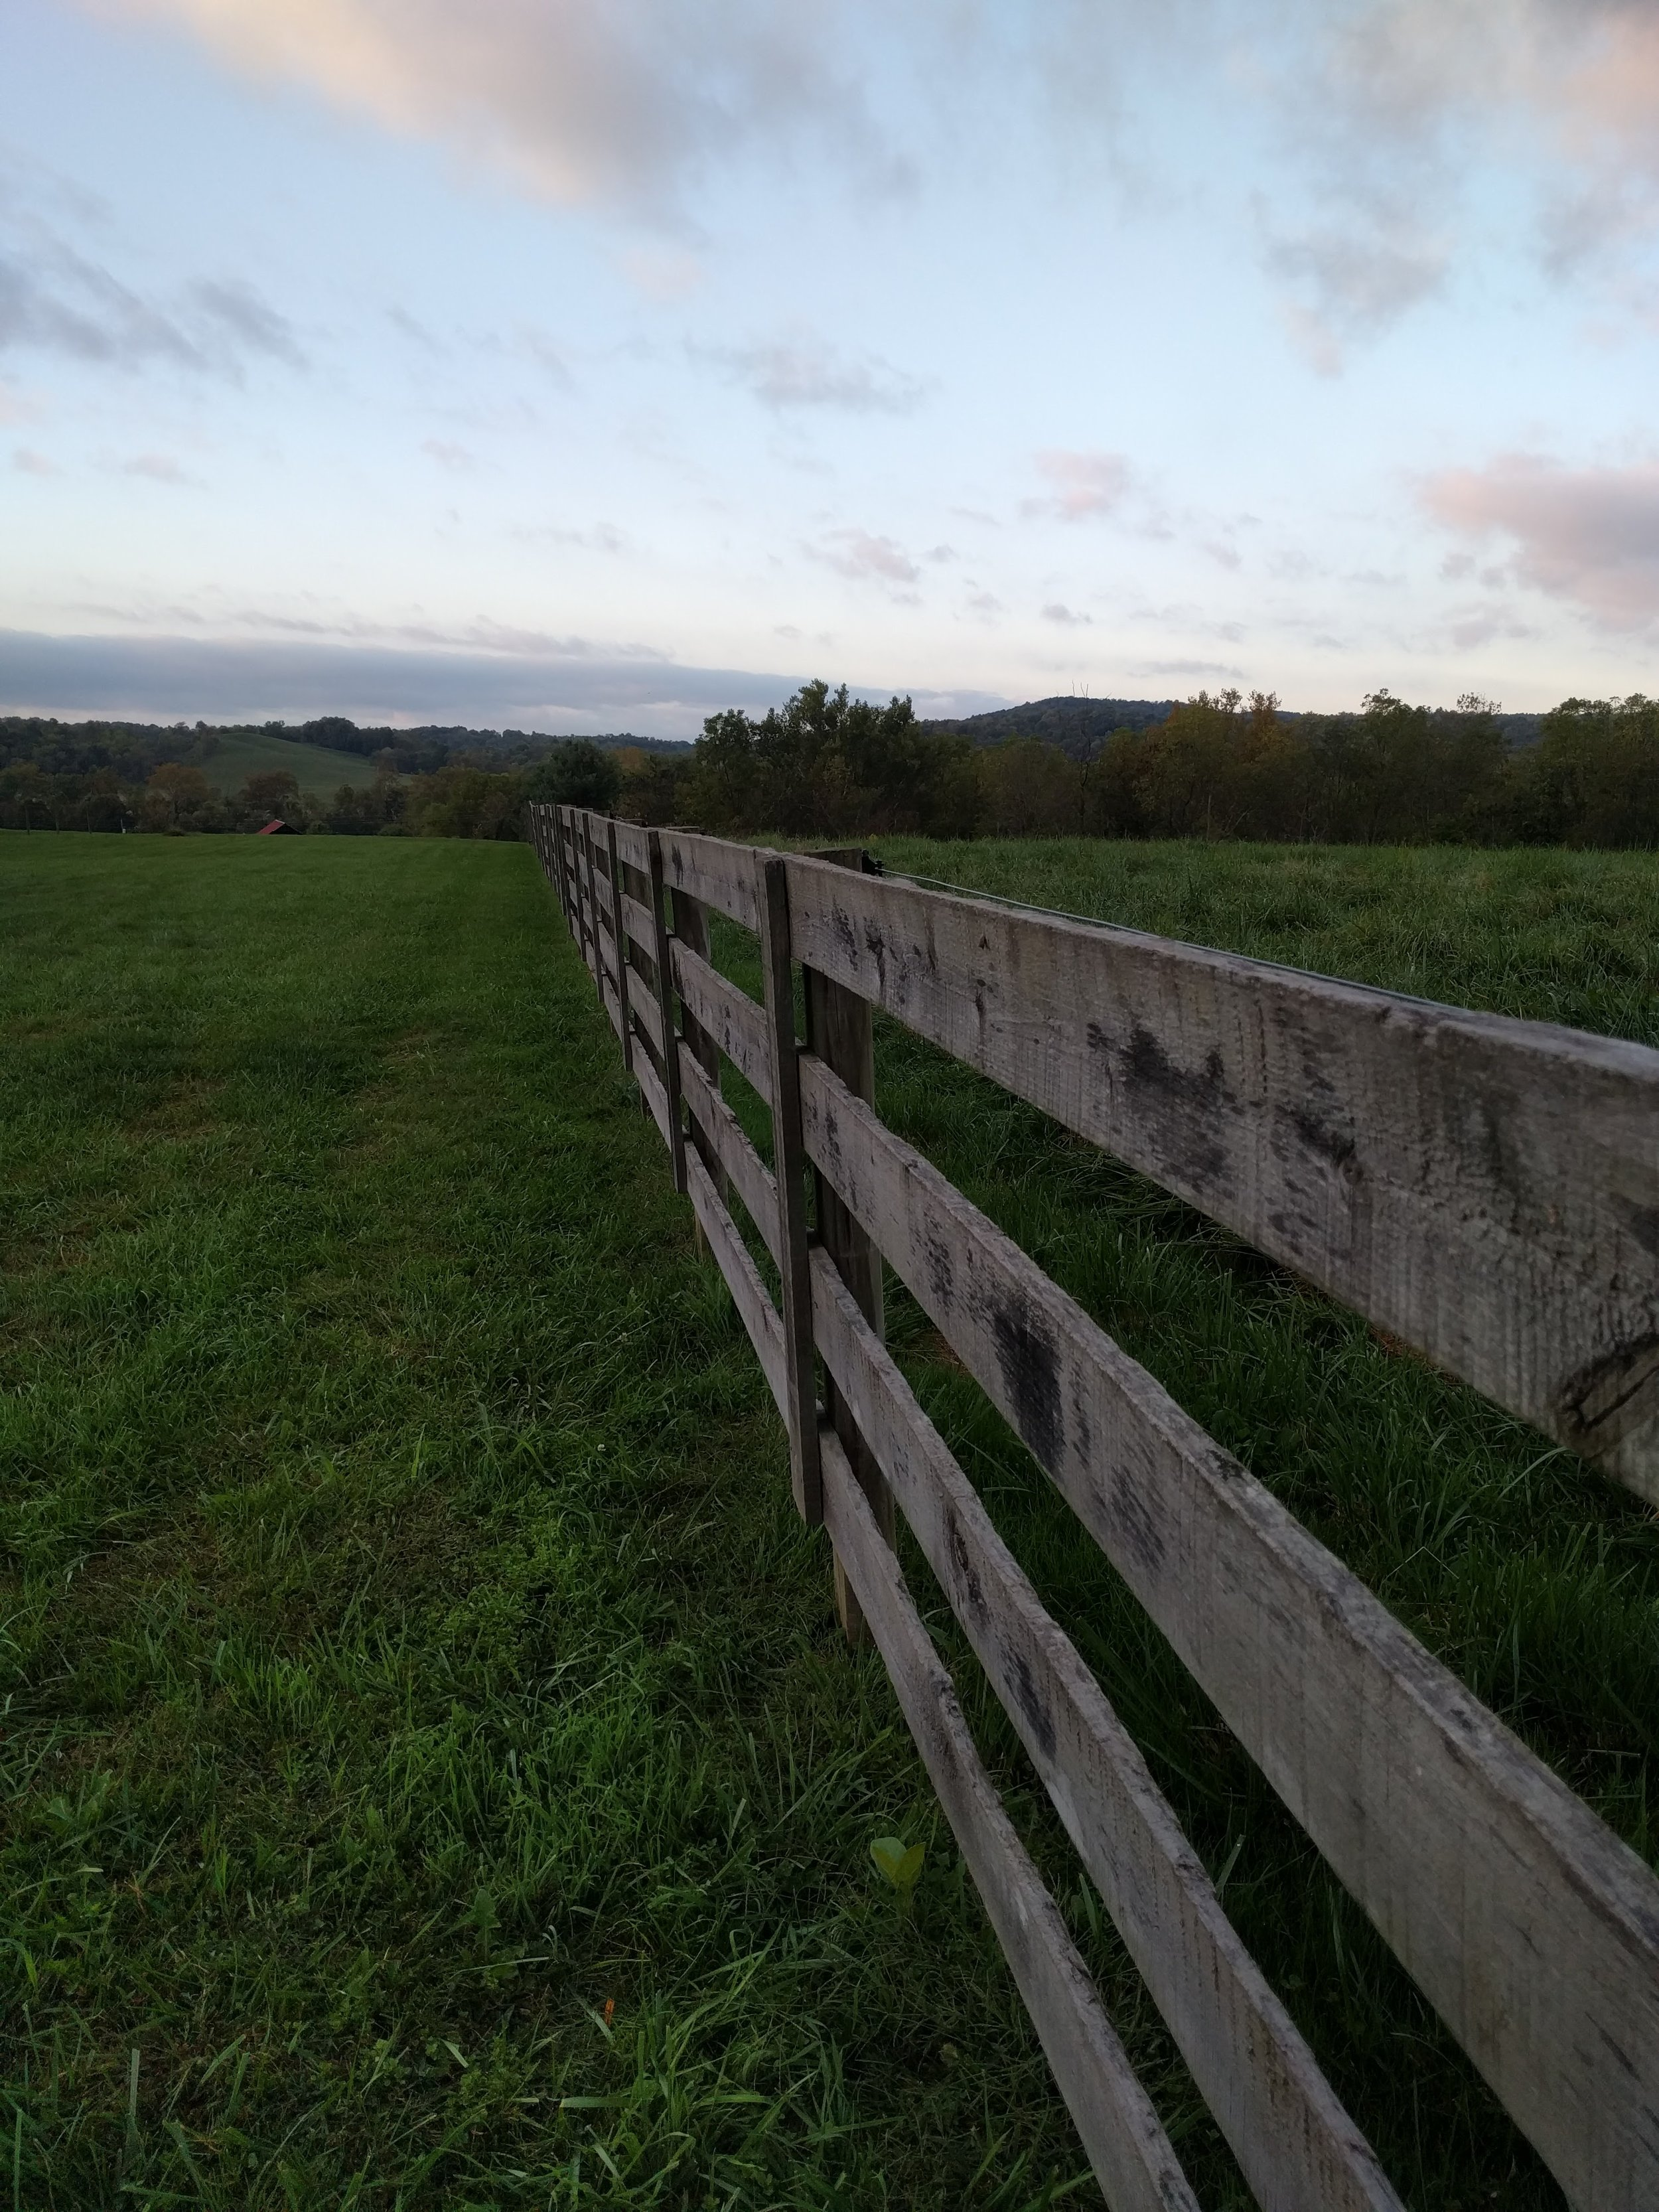 There will be goats on the other side of this fence in a few months! As well as suitable goat fencing.